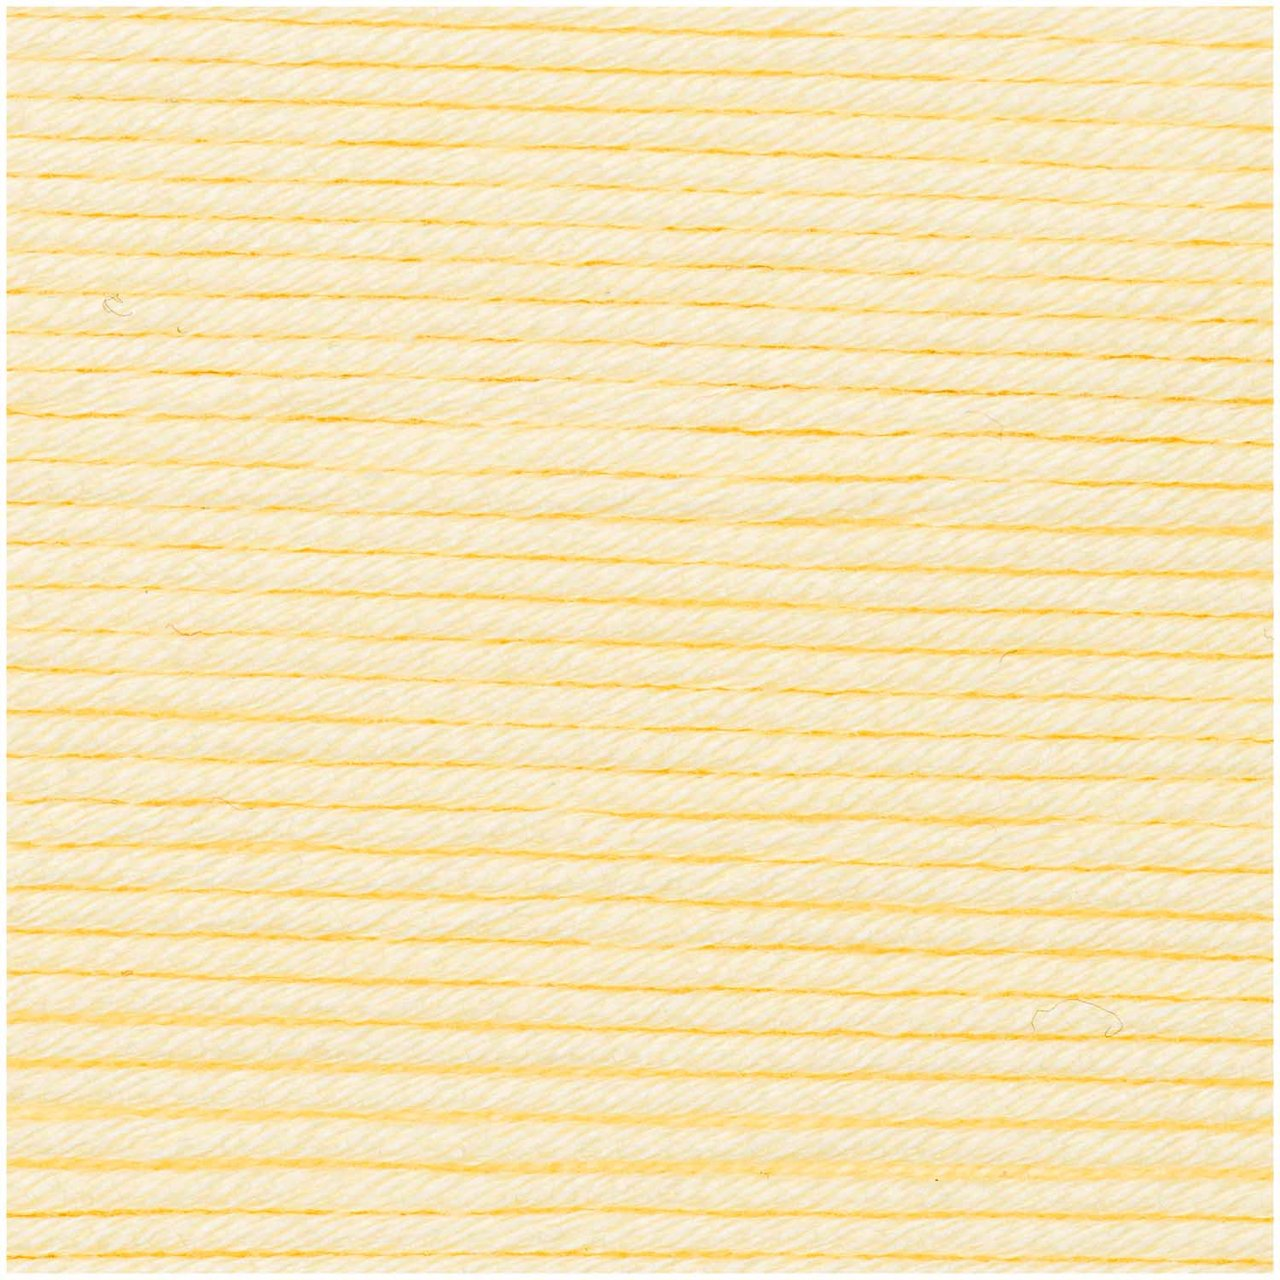 Rico Design Essentials Cotton dk 50g 120m zitrone von Rico Design